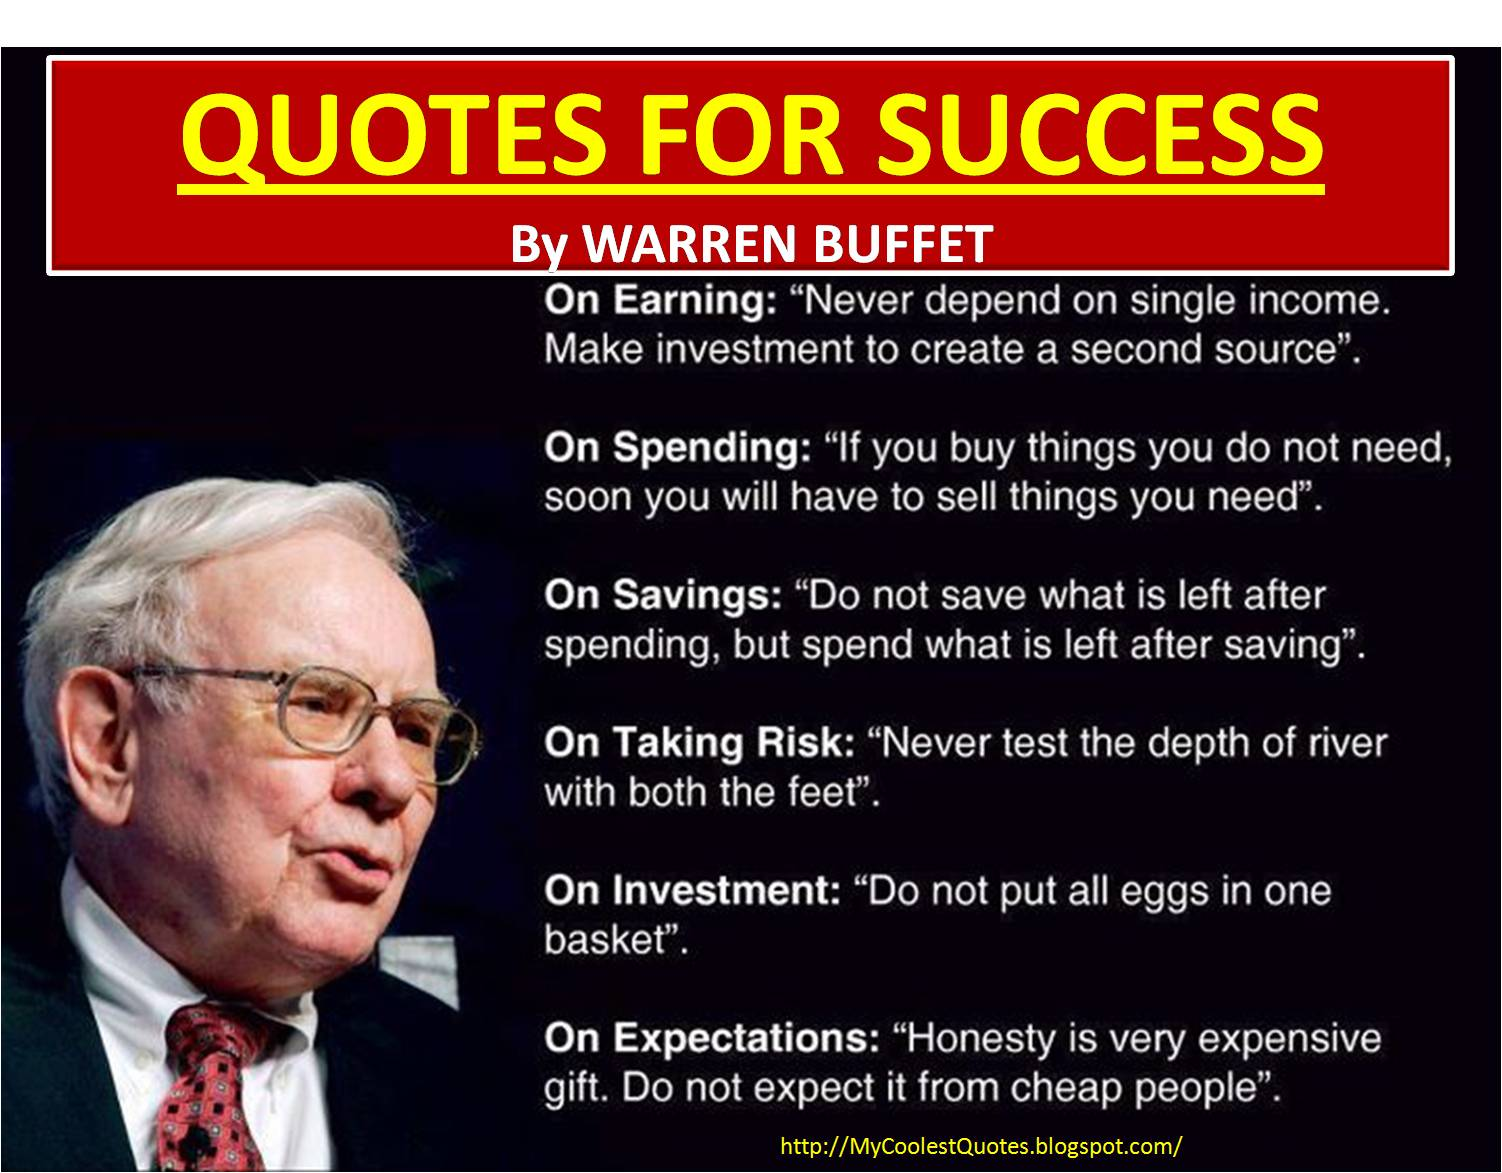 Best Quotes For Everyday My Coolest Quotes Quotes For Success By